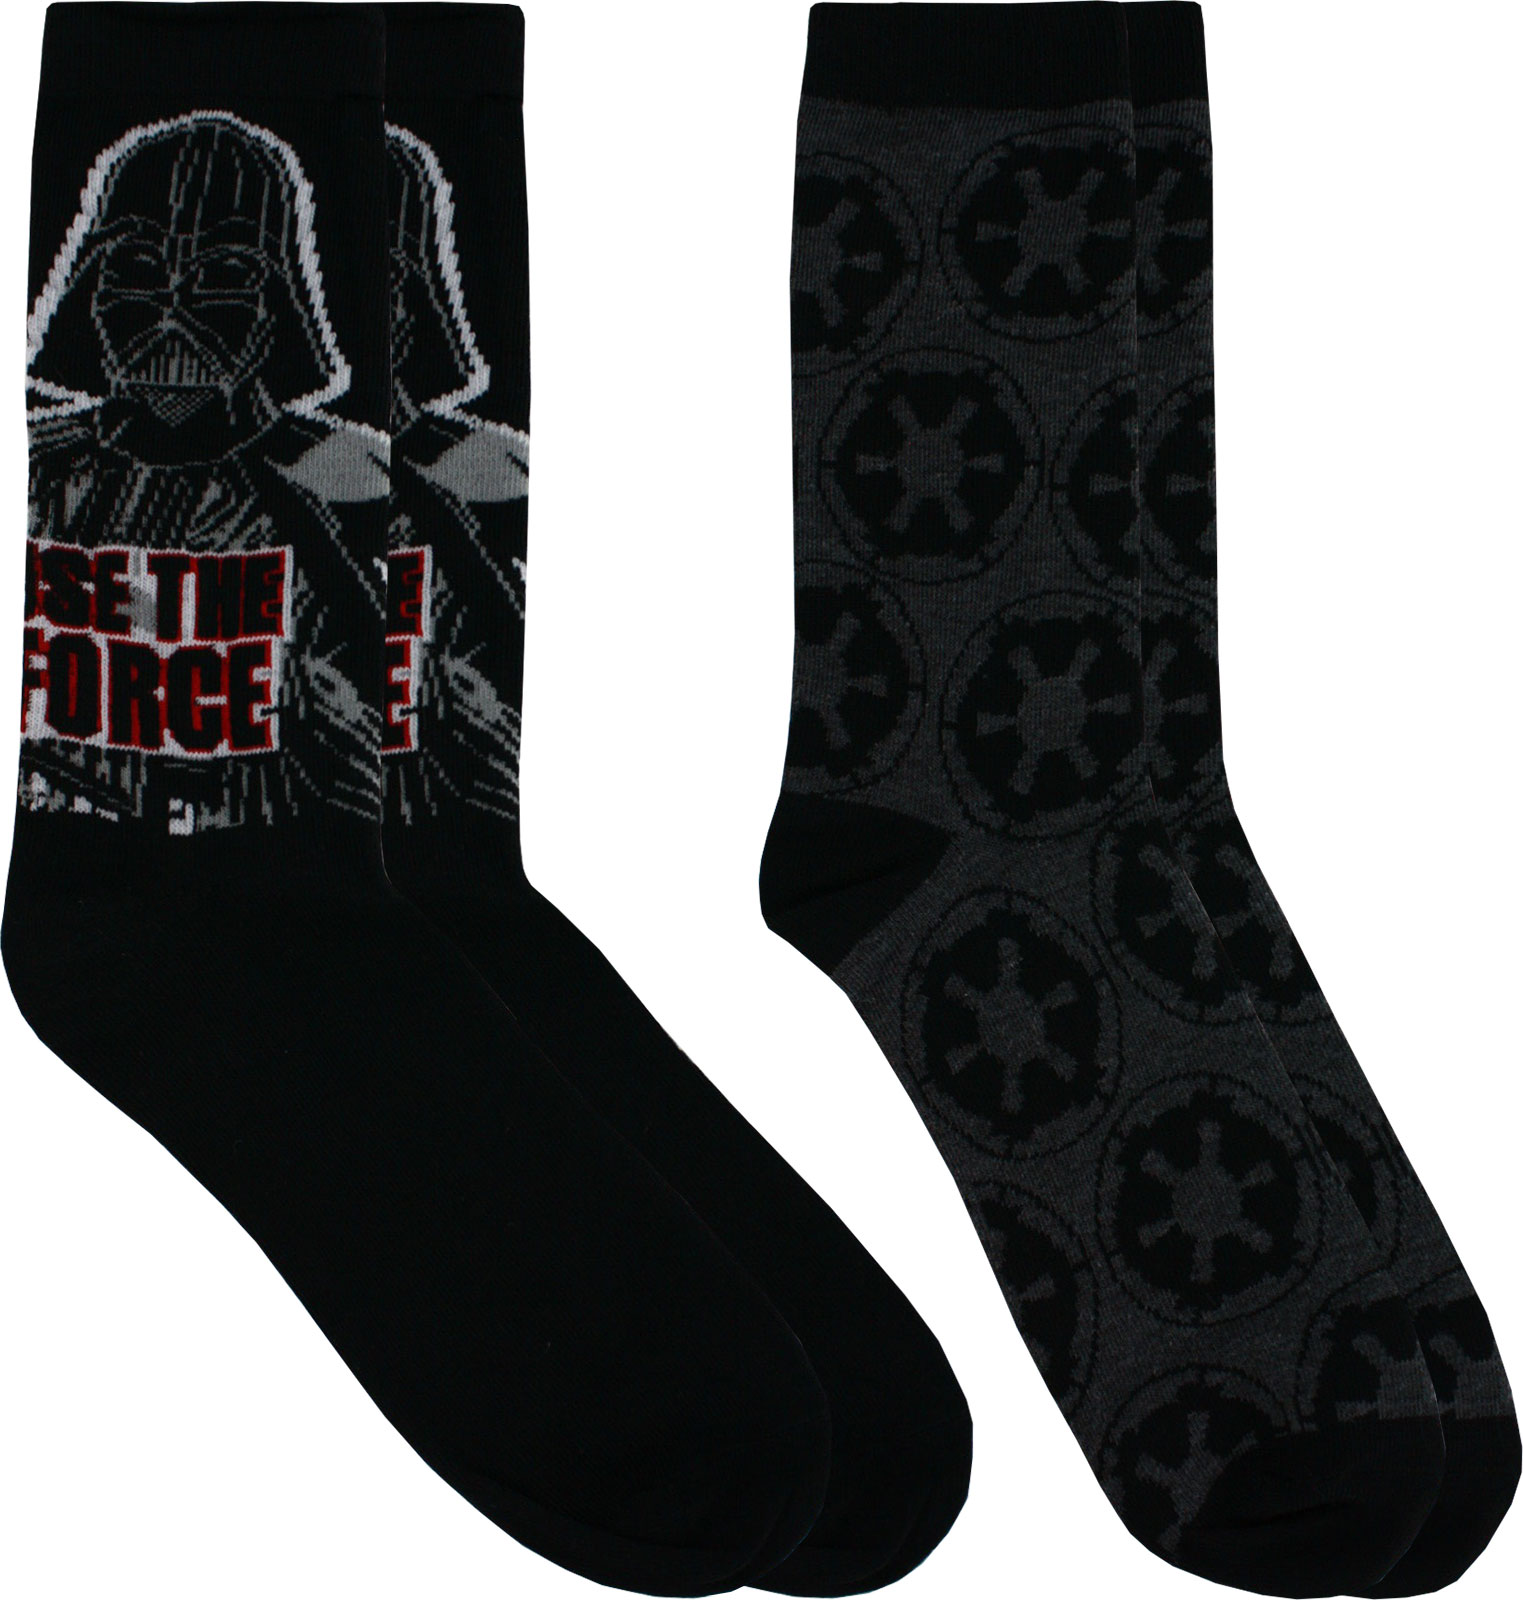 Star Wars Darth Vader & Empire Casual Pair of Crew Socks